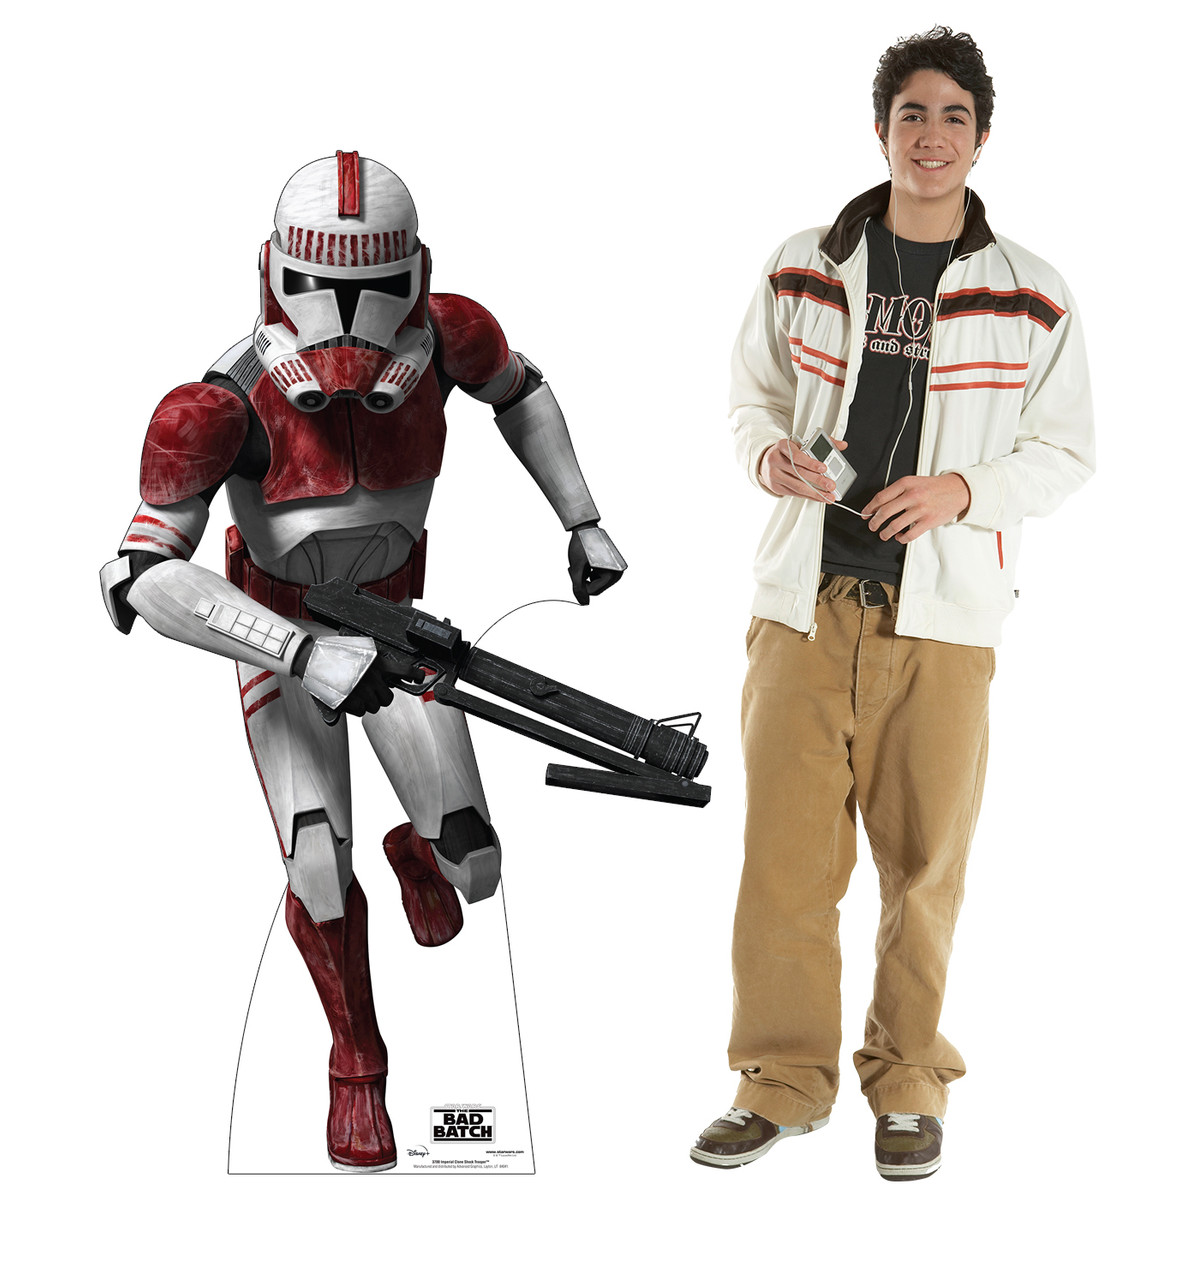 Life-size cardboard standee of Imperial Clone Shock Trooper  from The Bad Batch on Disney+ with model.